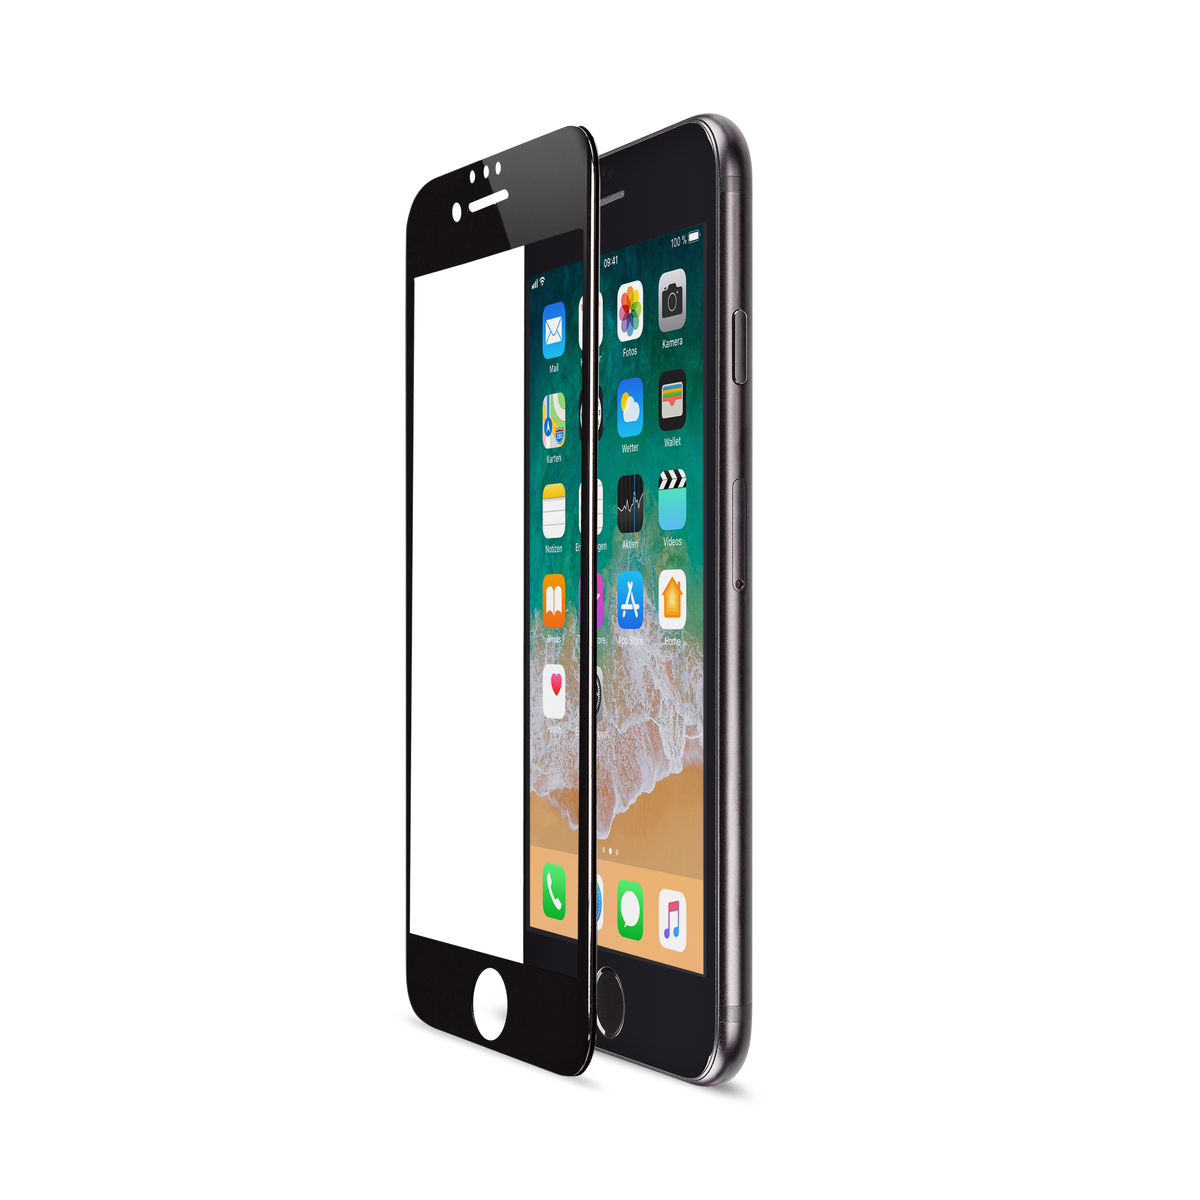 Iphone 6 Accessories Artwizz Lcd Touchscreen Asus Zenfone Original Full Coverage Safety Glass Screen Protection For 8 7